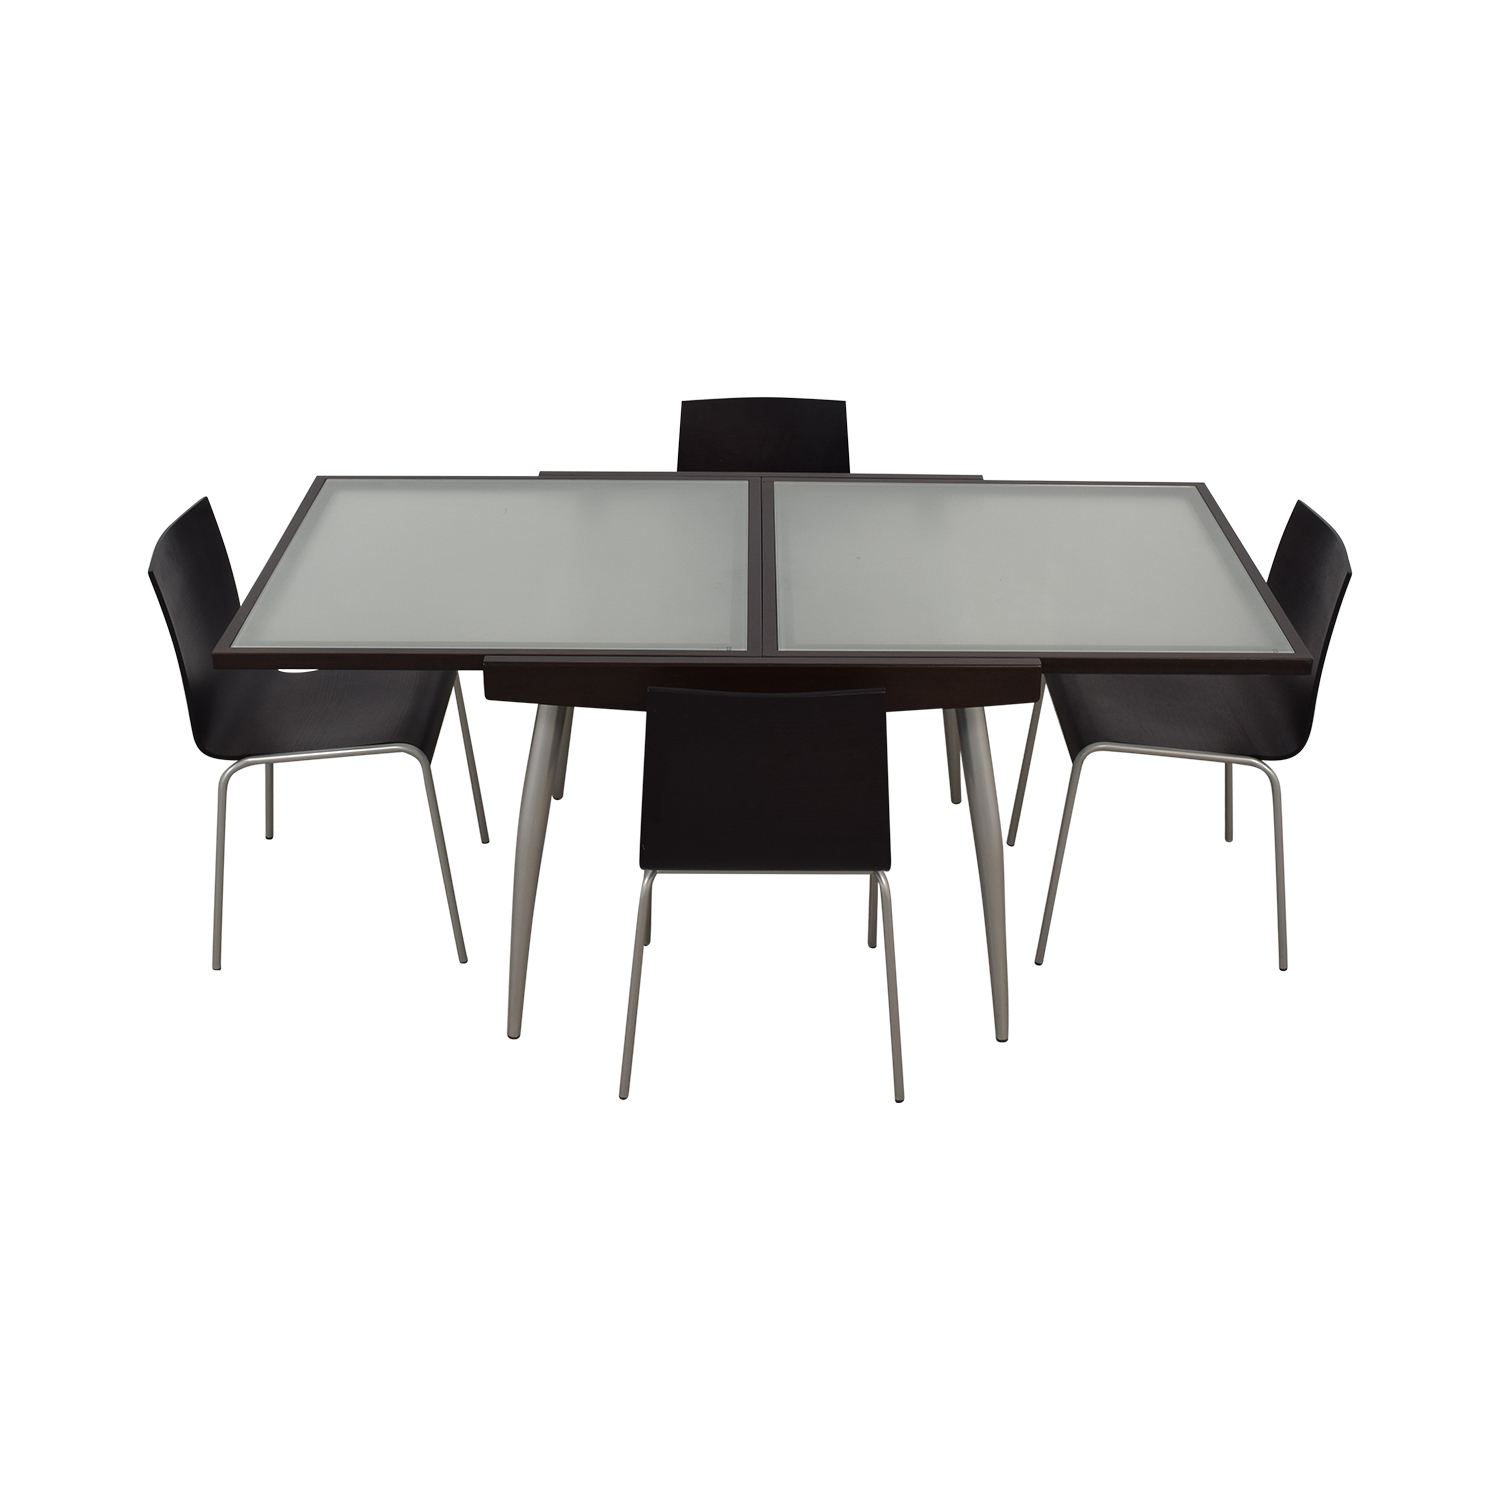 Calligaris Calligaris Extendable Glass and Wood Dining Set nj